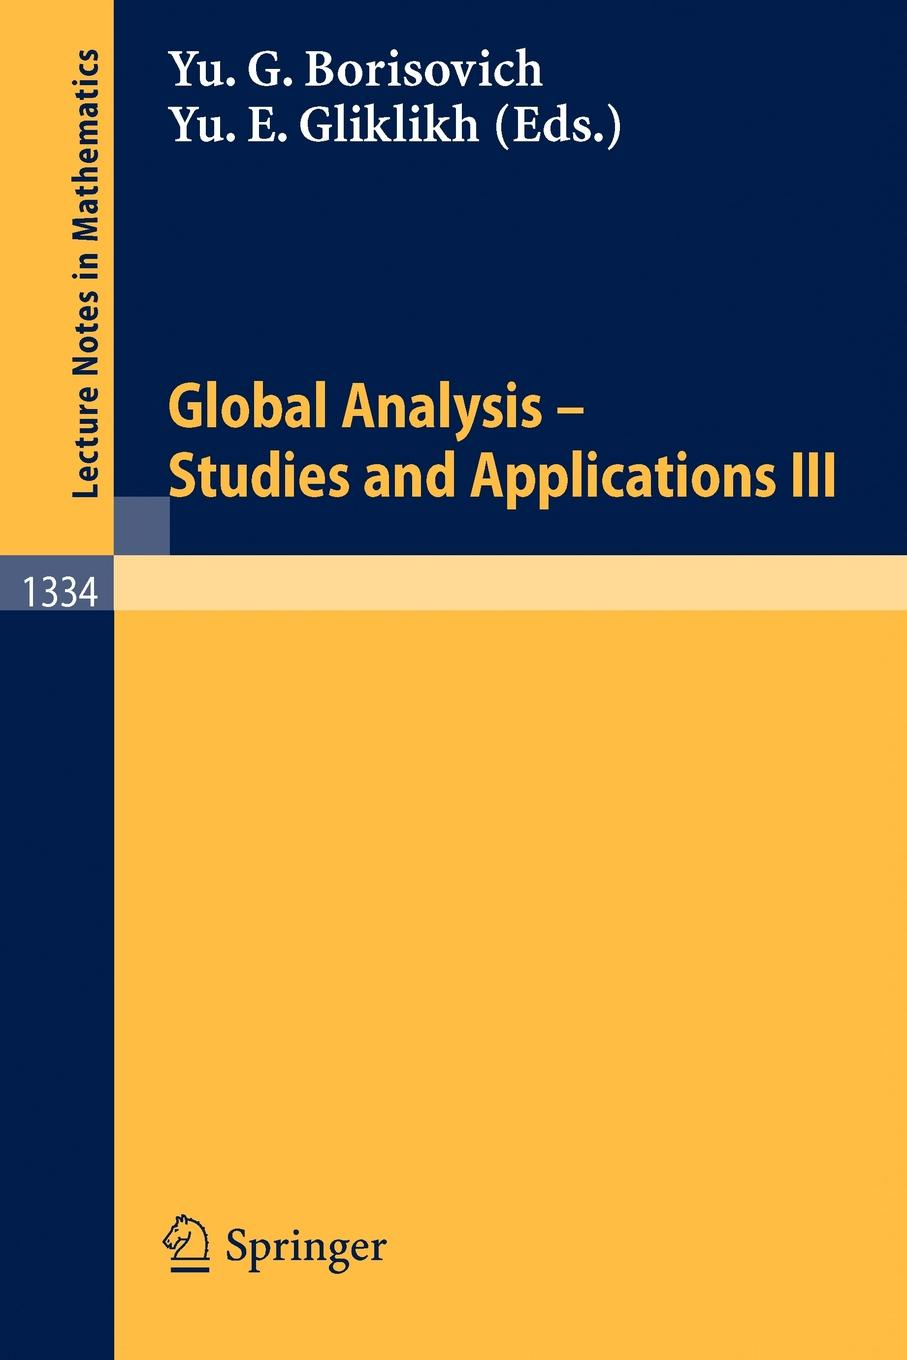 все цены на Global Analysis. Studies and Applications III онлайн